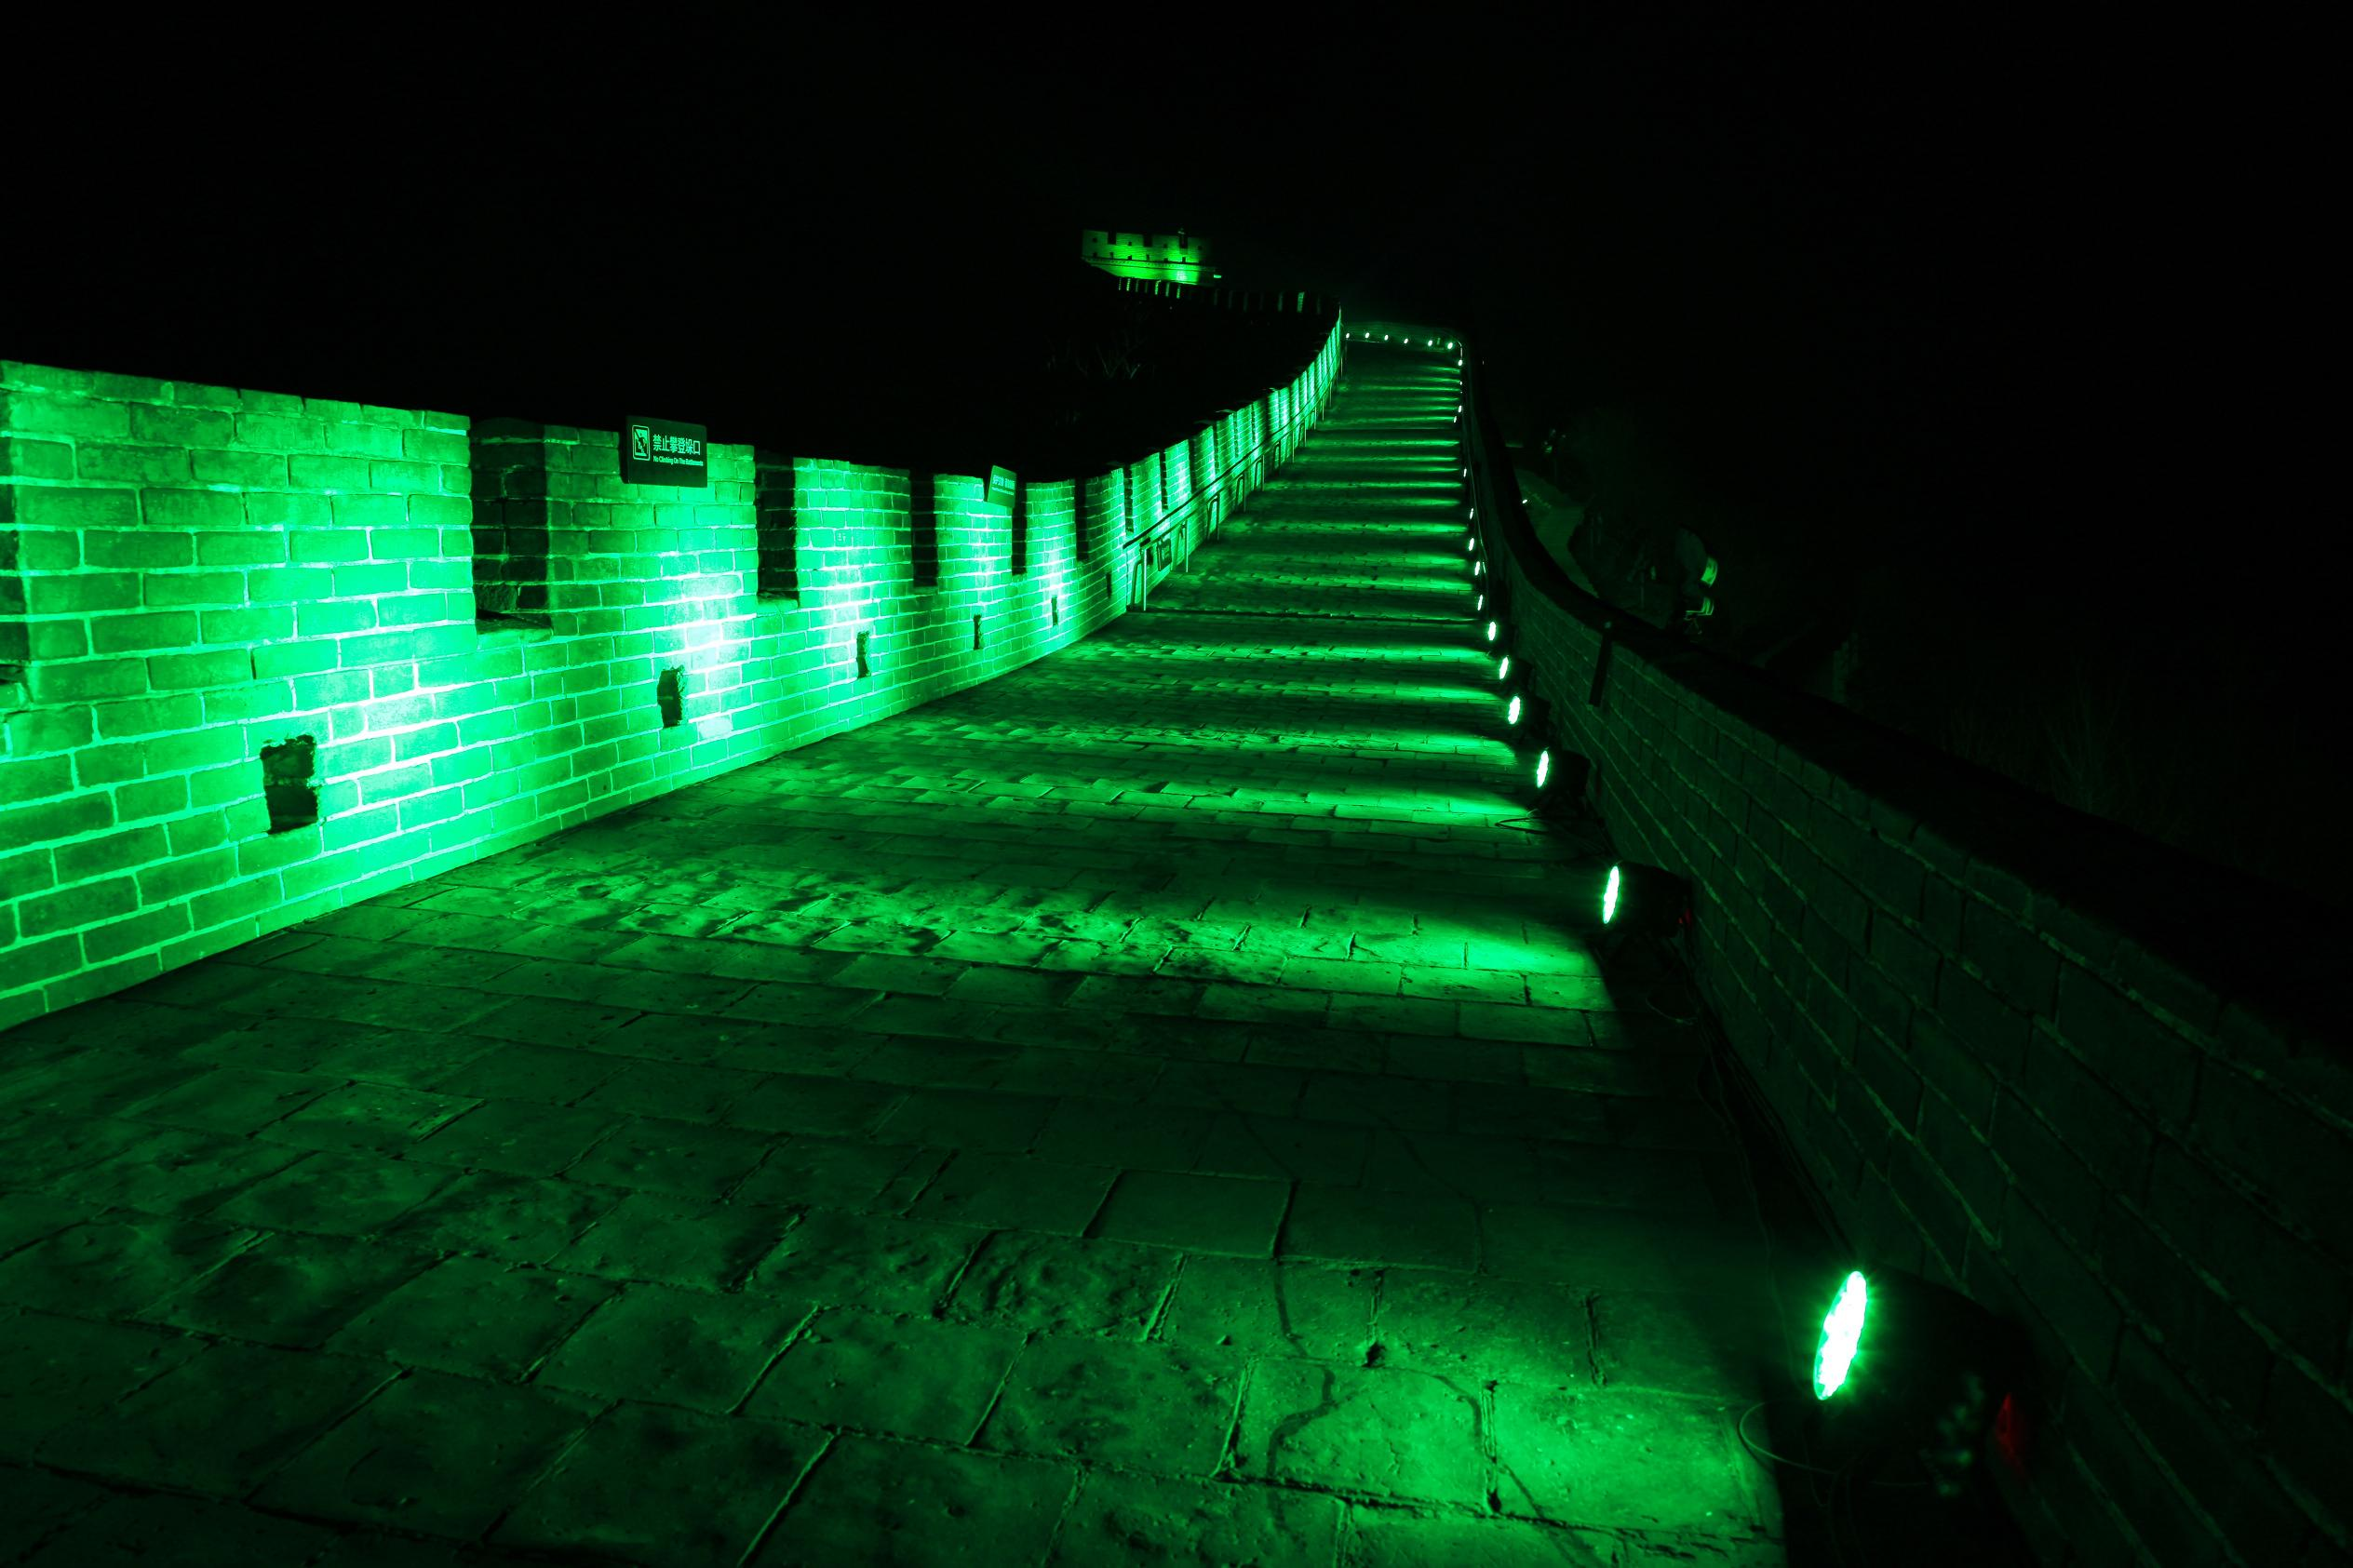 GREAT WALL OF CHINA BECOMES THE 'GREEN WALL OF CHINA' AS IT